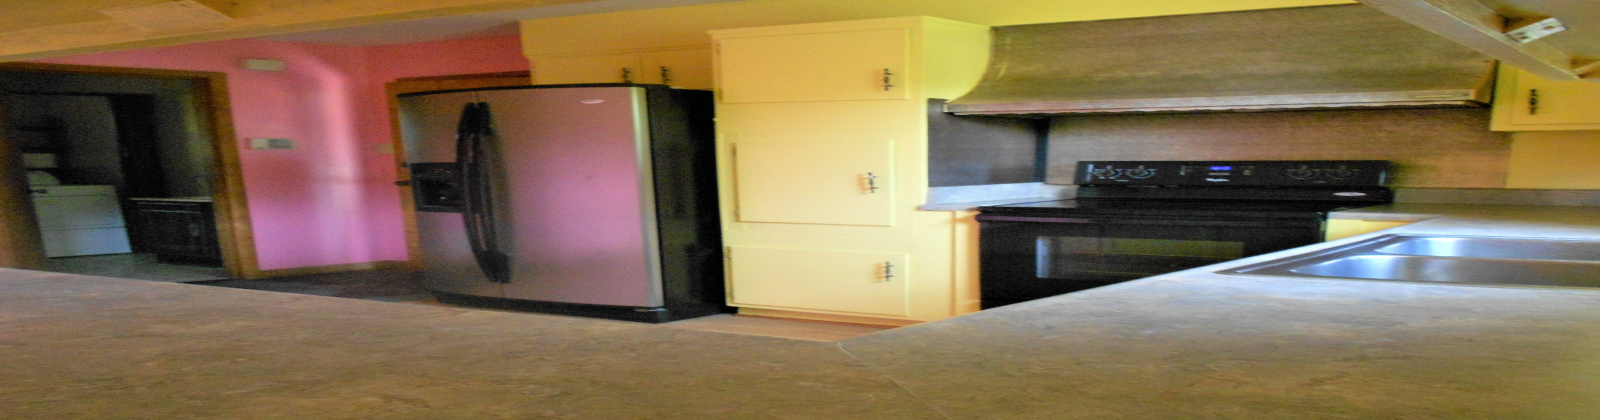 9 Ransom Road Athens, Ohio, 3 Bedrooms Bedrooms, ,2 BathroomsBathrooms,Apartment,For Rent,Ransom,1045